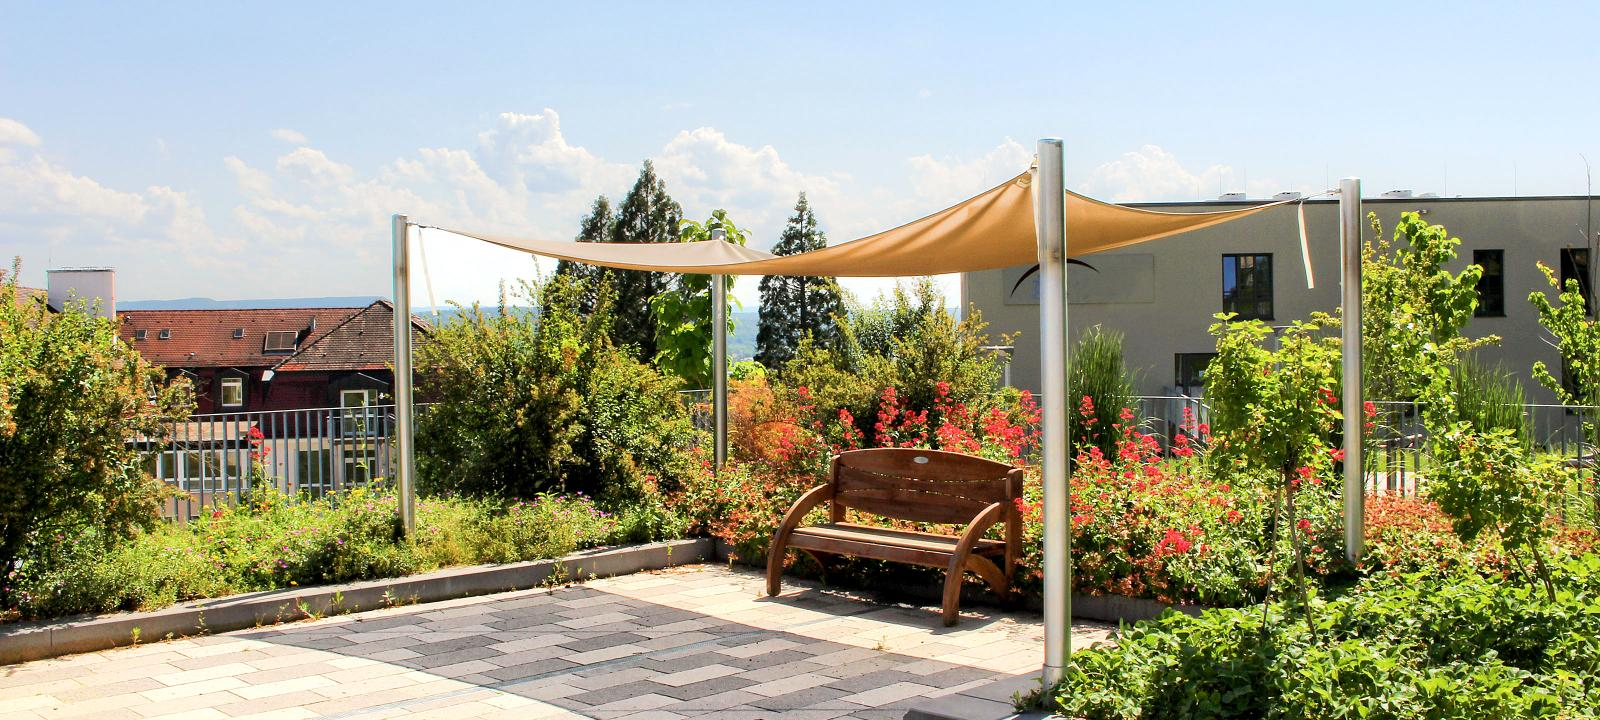 Roof garden with shrubs, perennials and bench on paved terrace